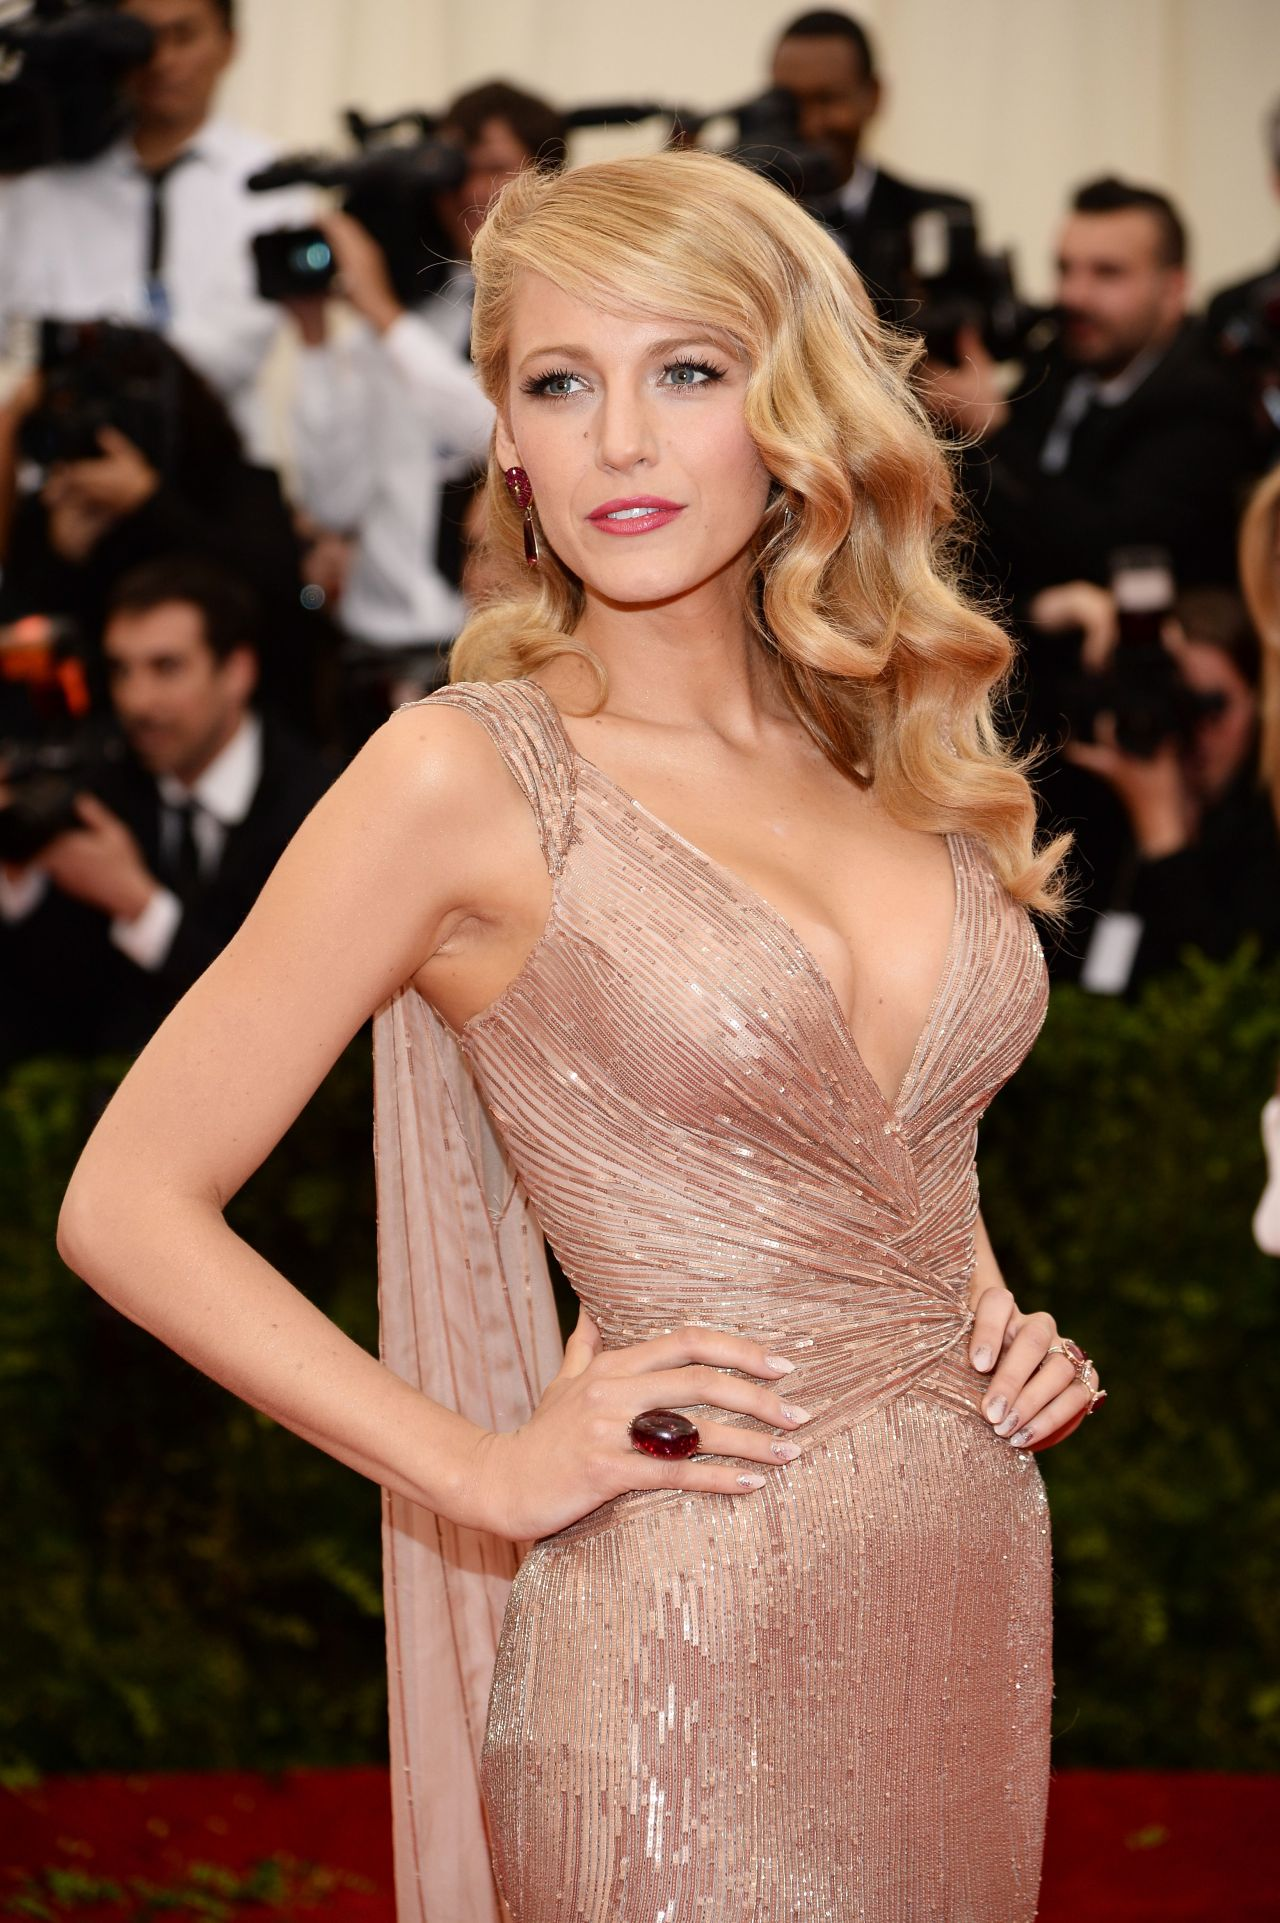 Blake Lively Wearing Gucci Gown 2014 Met Costume